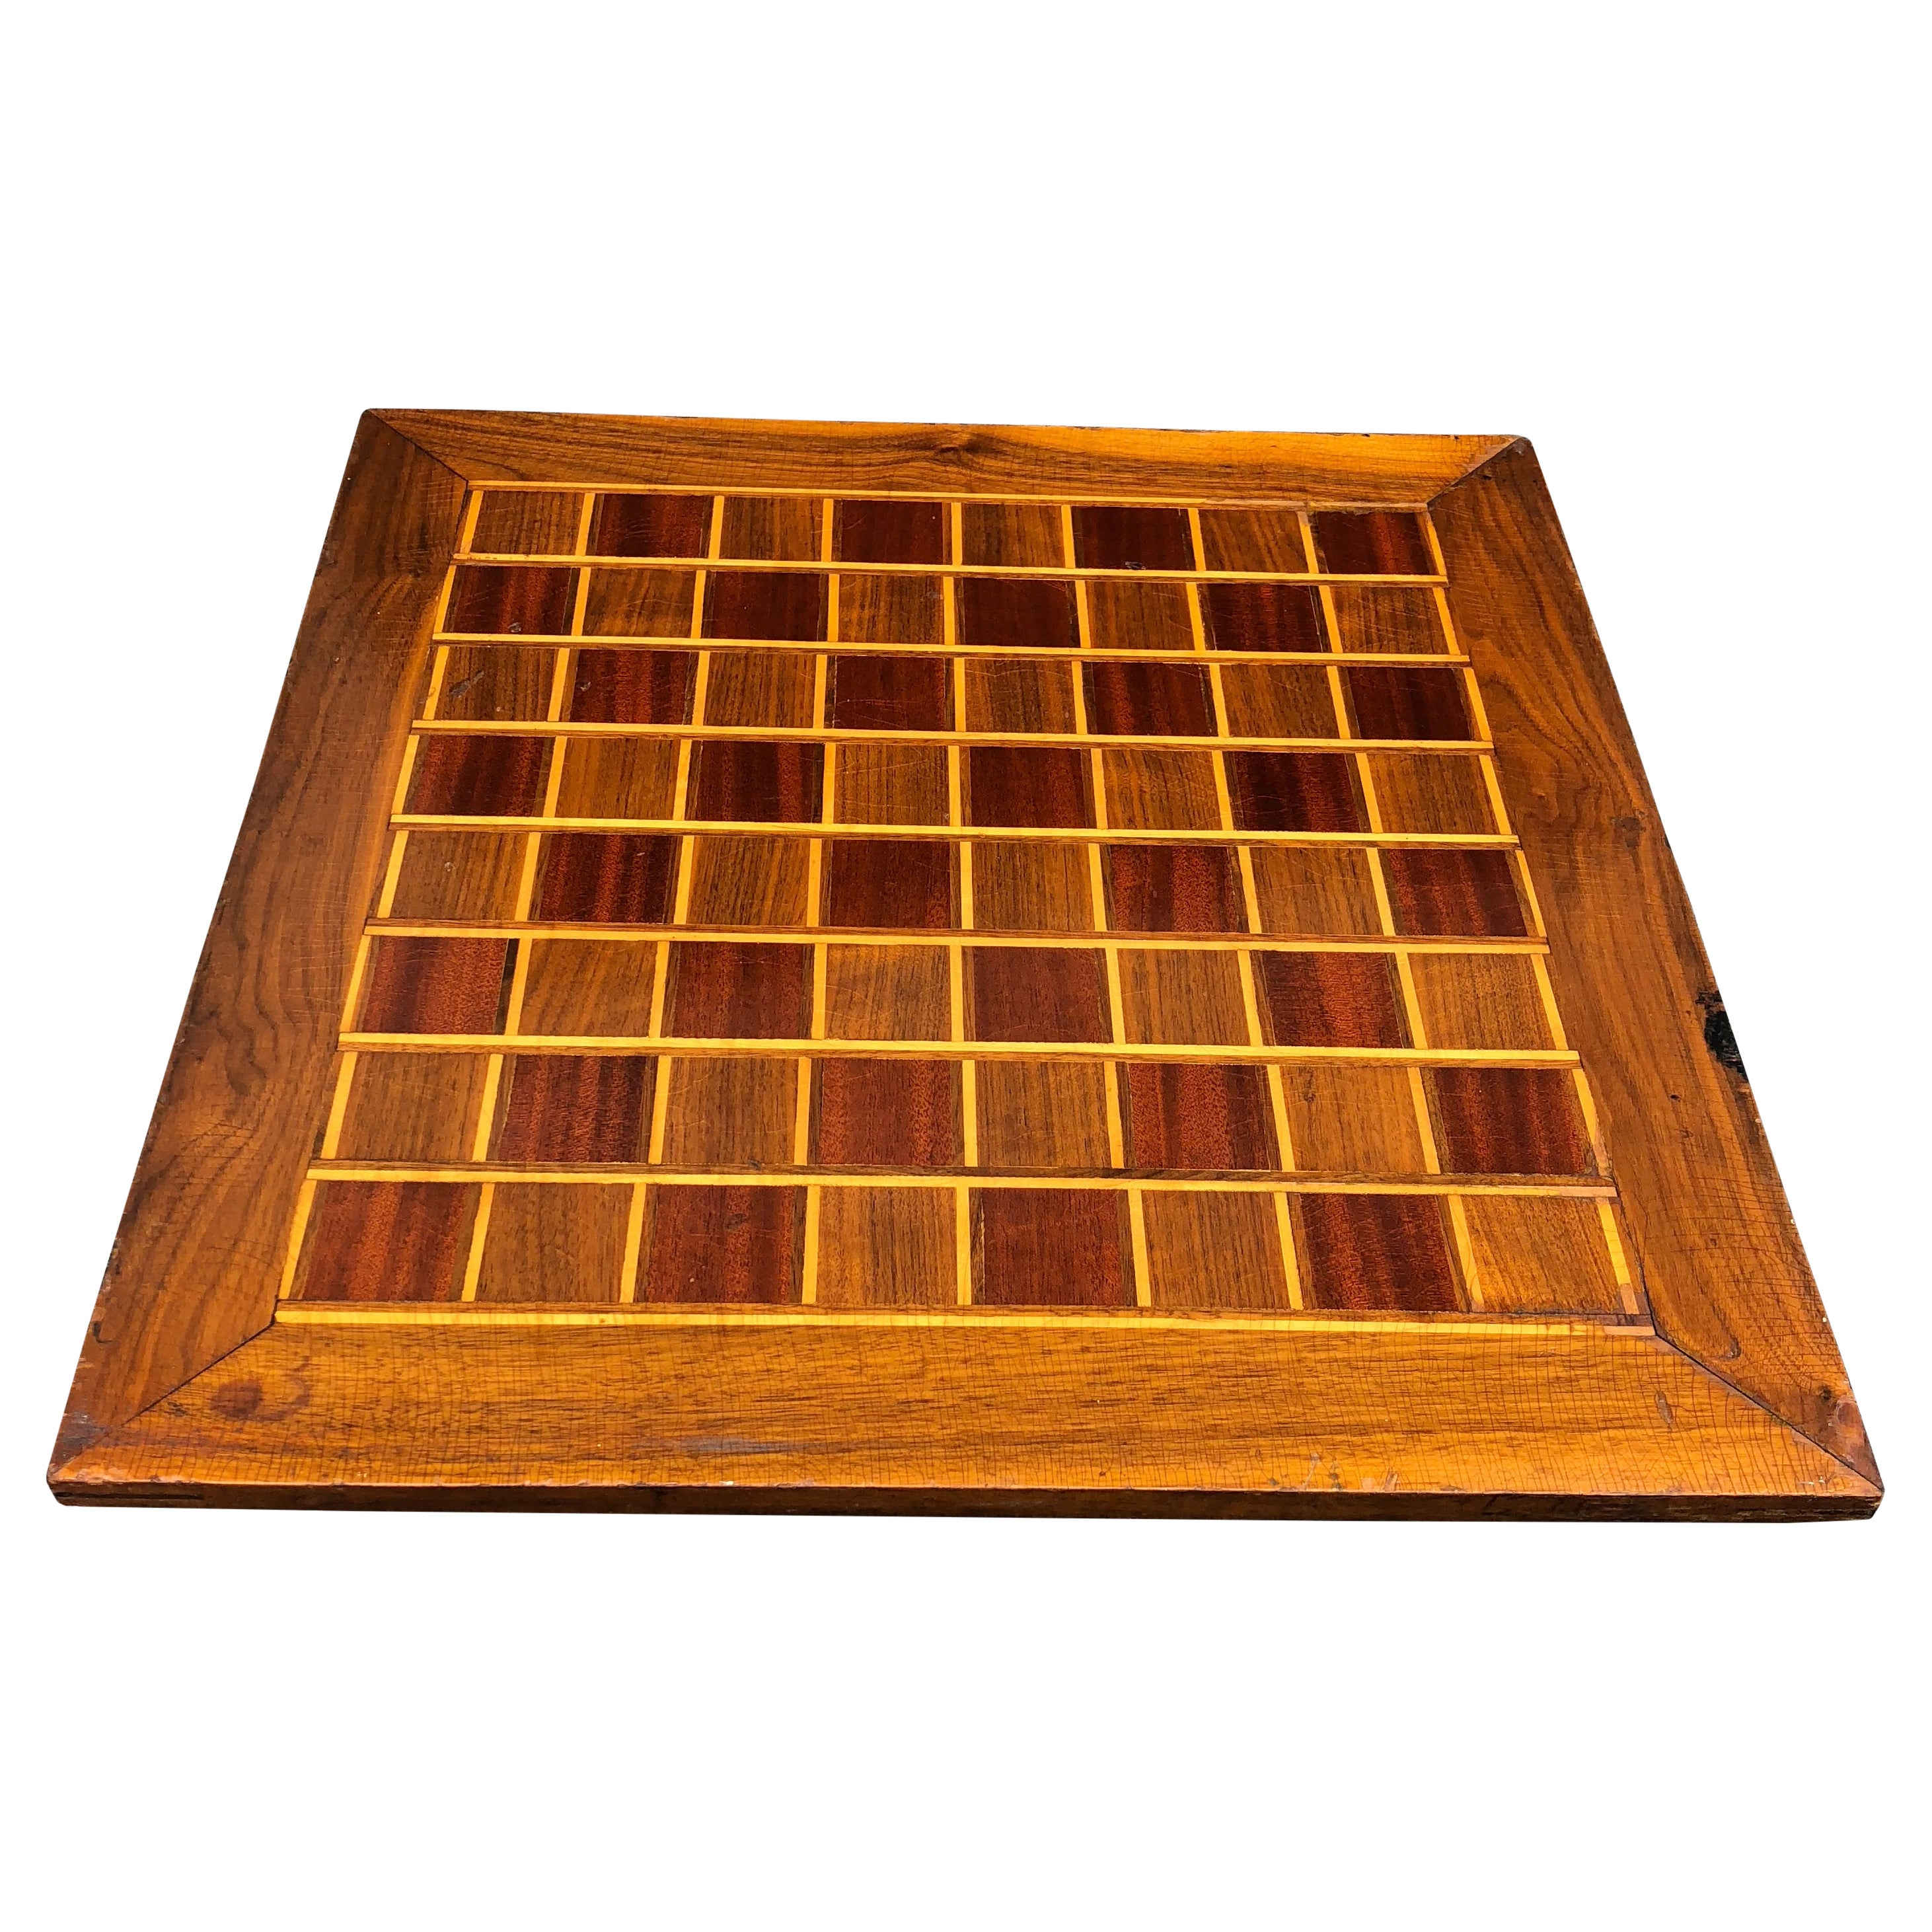 Large Wooden Folk Art Chess or Checkers Game Board